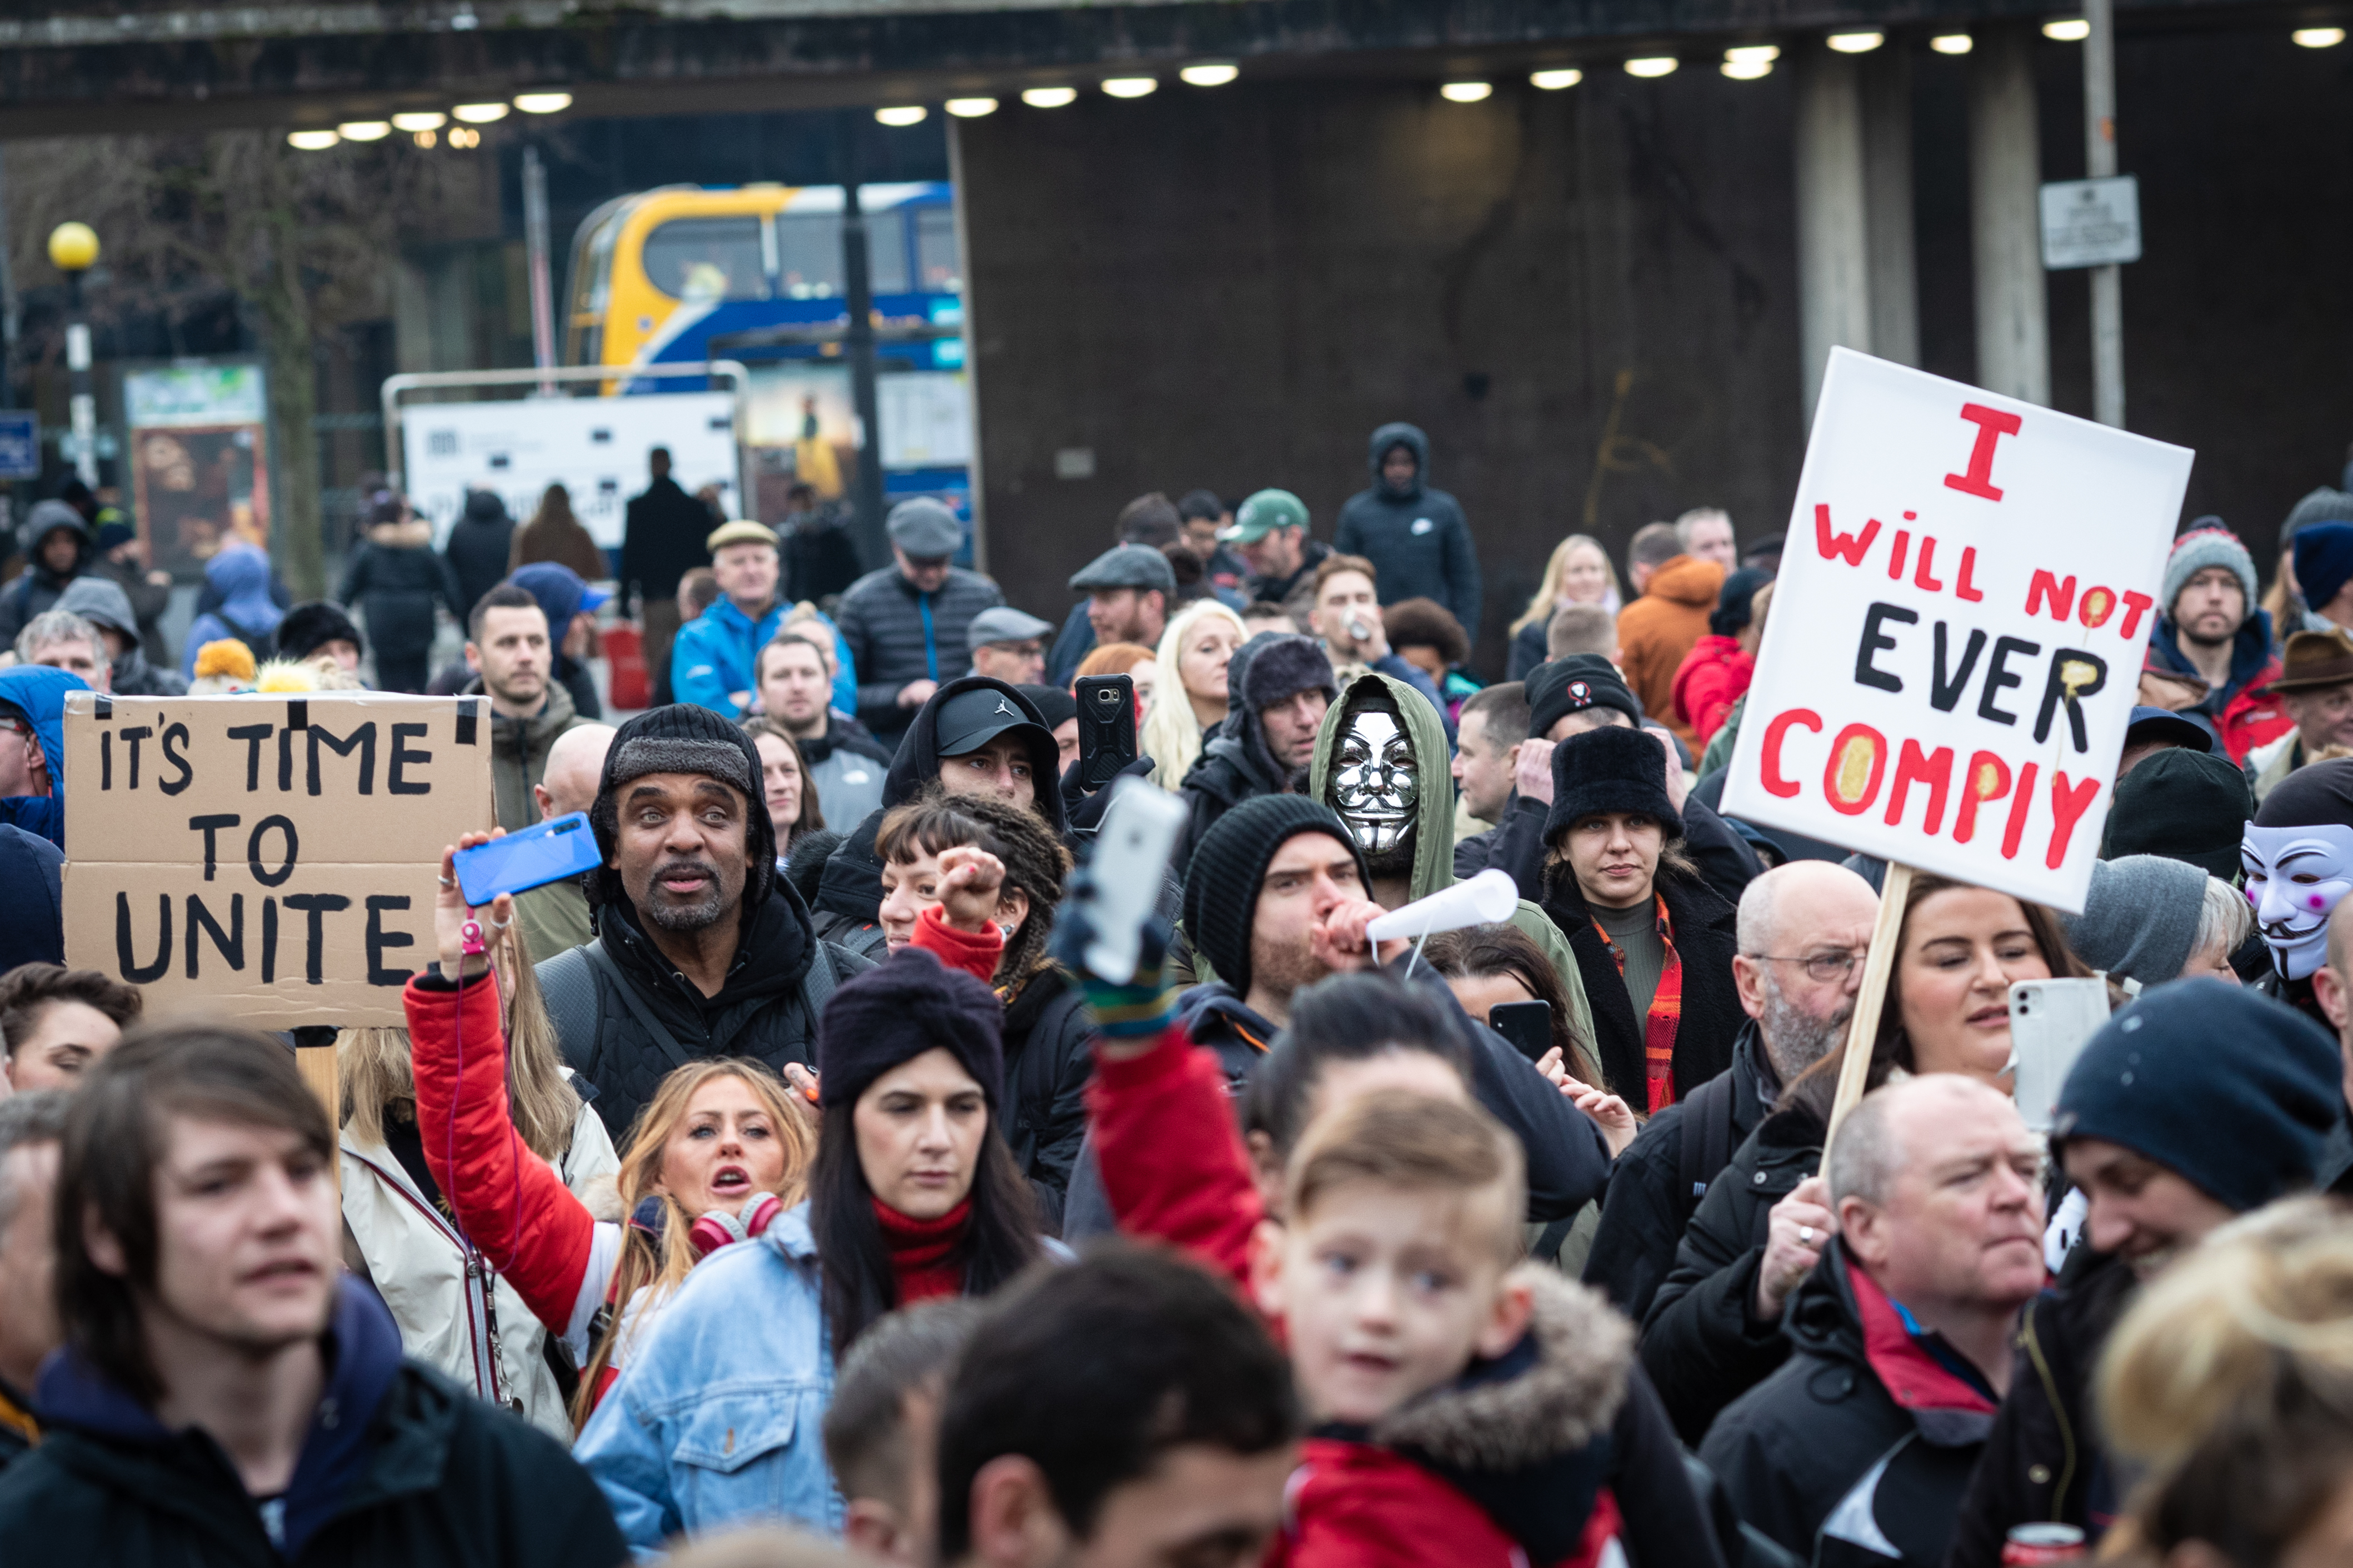 A protester holding a placard expressing her opinion in the crowd at Piccadilly Gardens during the freedom march. Protesters take to the streets again to rise awareness regarding the recent lockdowns and how it is affecting peoples livelihoods. (Photo by Andy Barton / SOPA Images/Sipa USA)